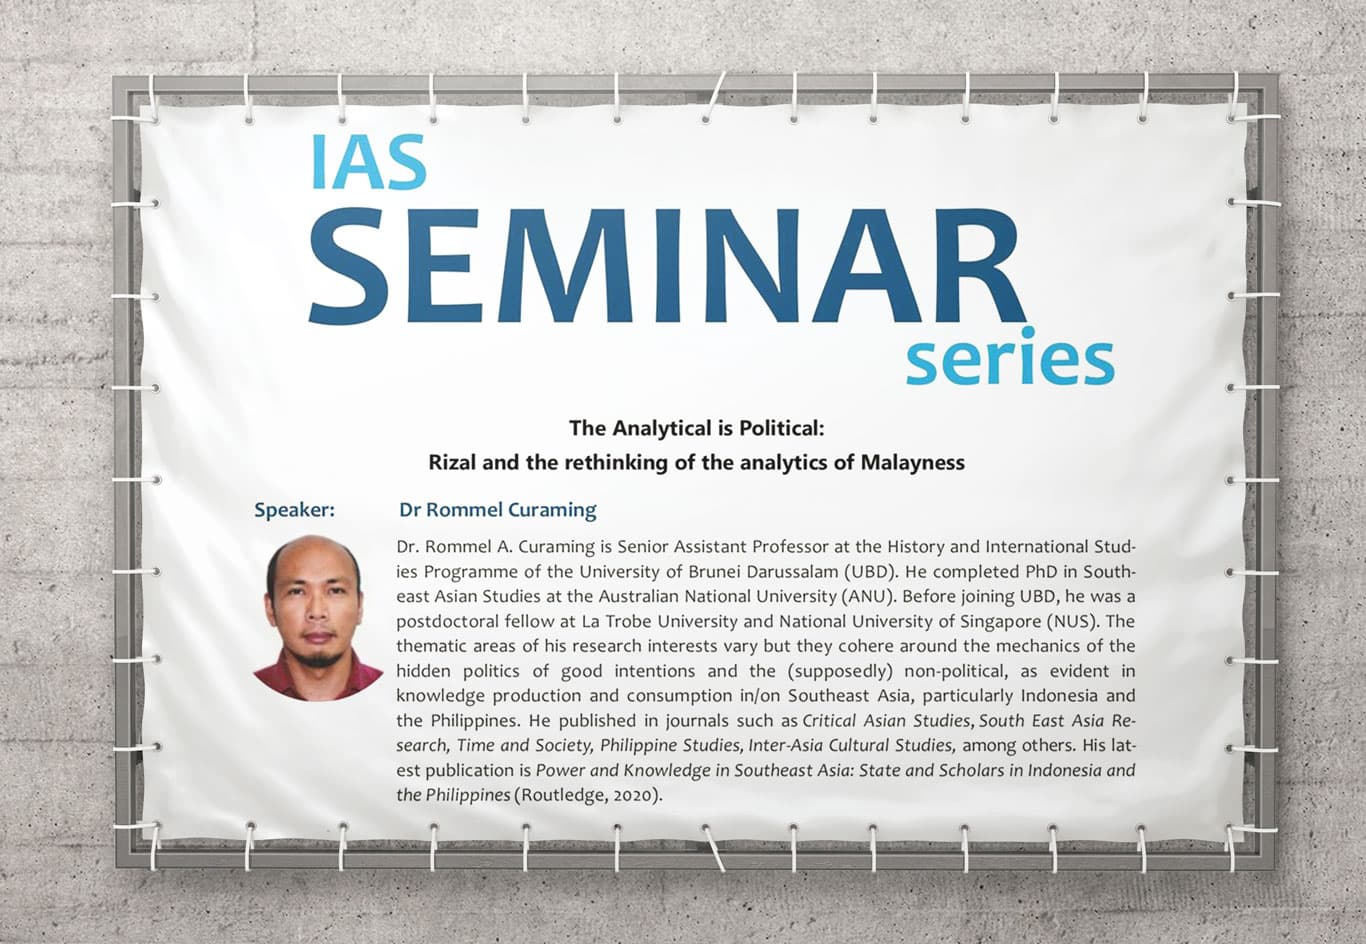 Seminar on Rizal and the Analytics of Malayness